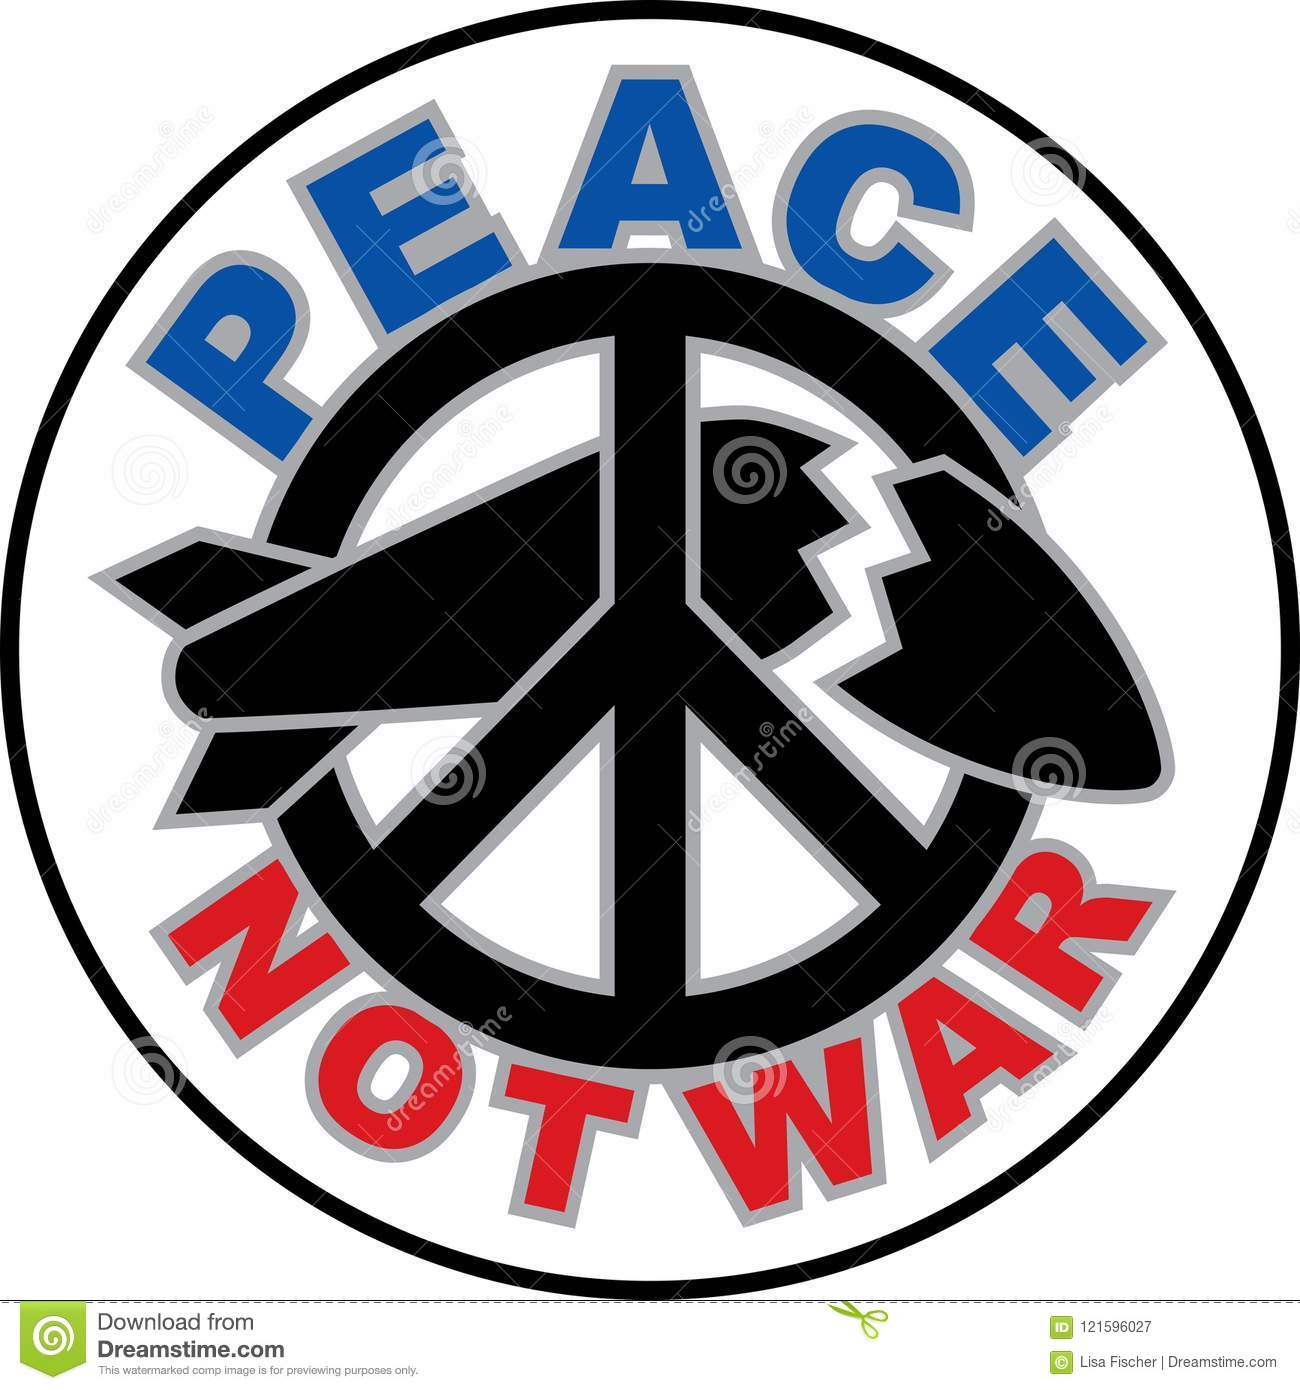 Peace Not War Text Design With A Peace Symbol Destroying A Missile